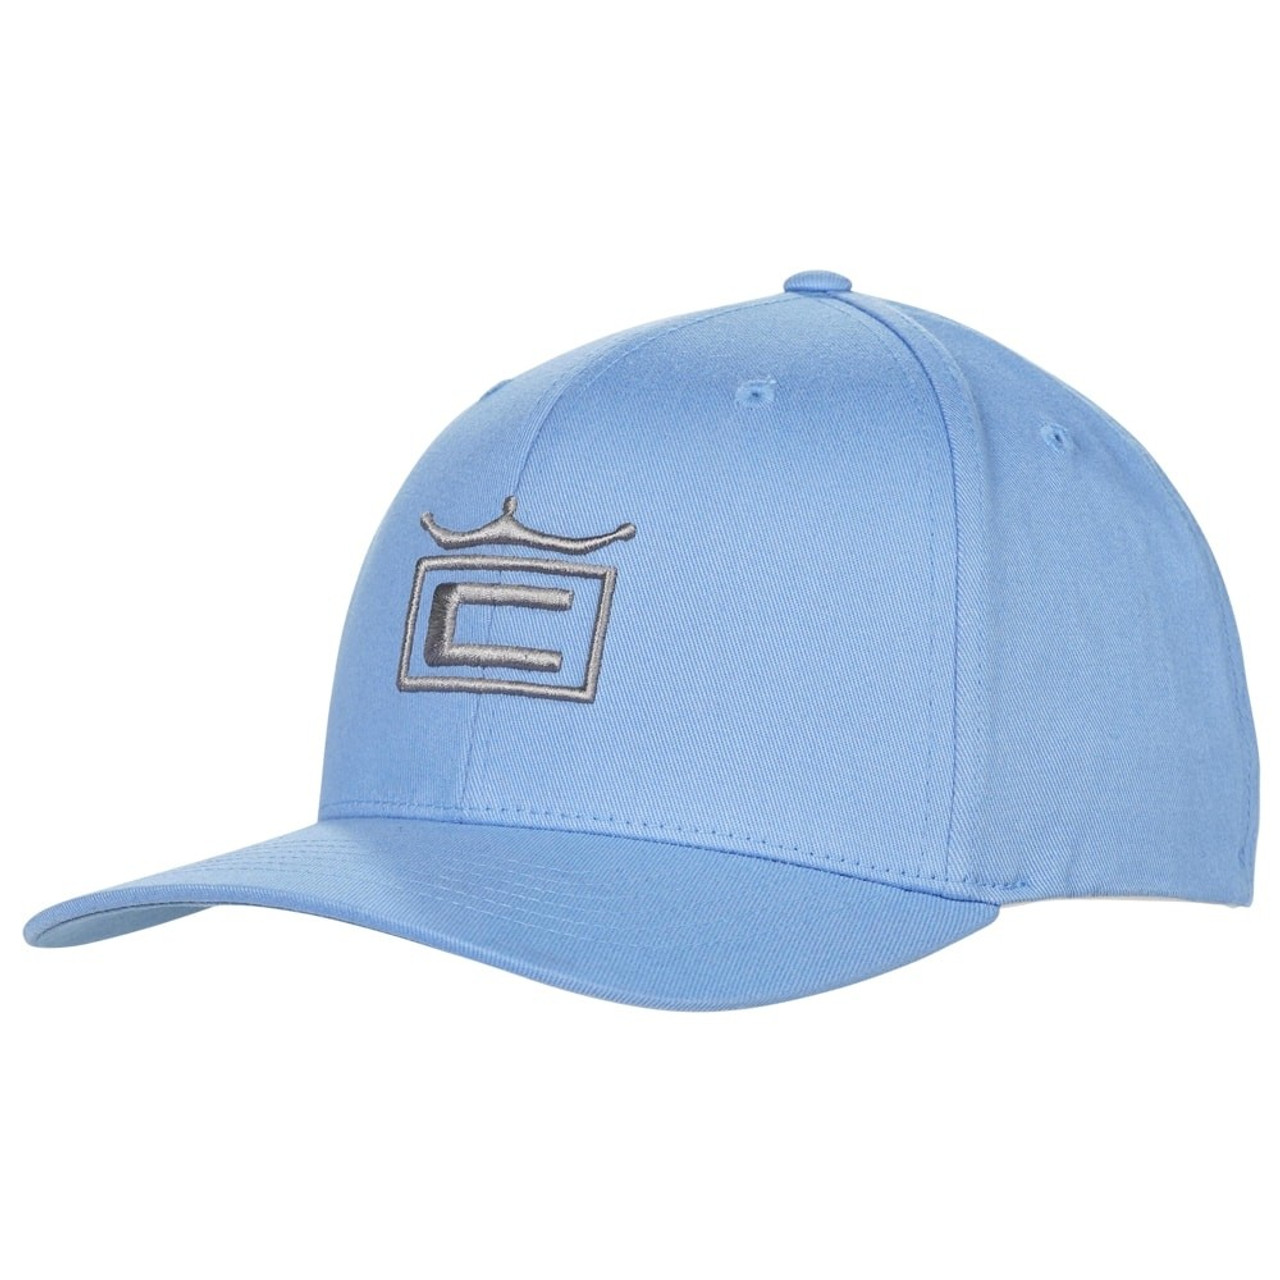 Cobra Tour Crown Snapback Cap - Blue Bell